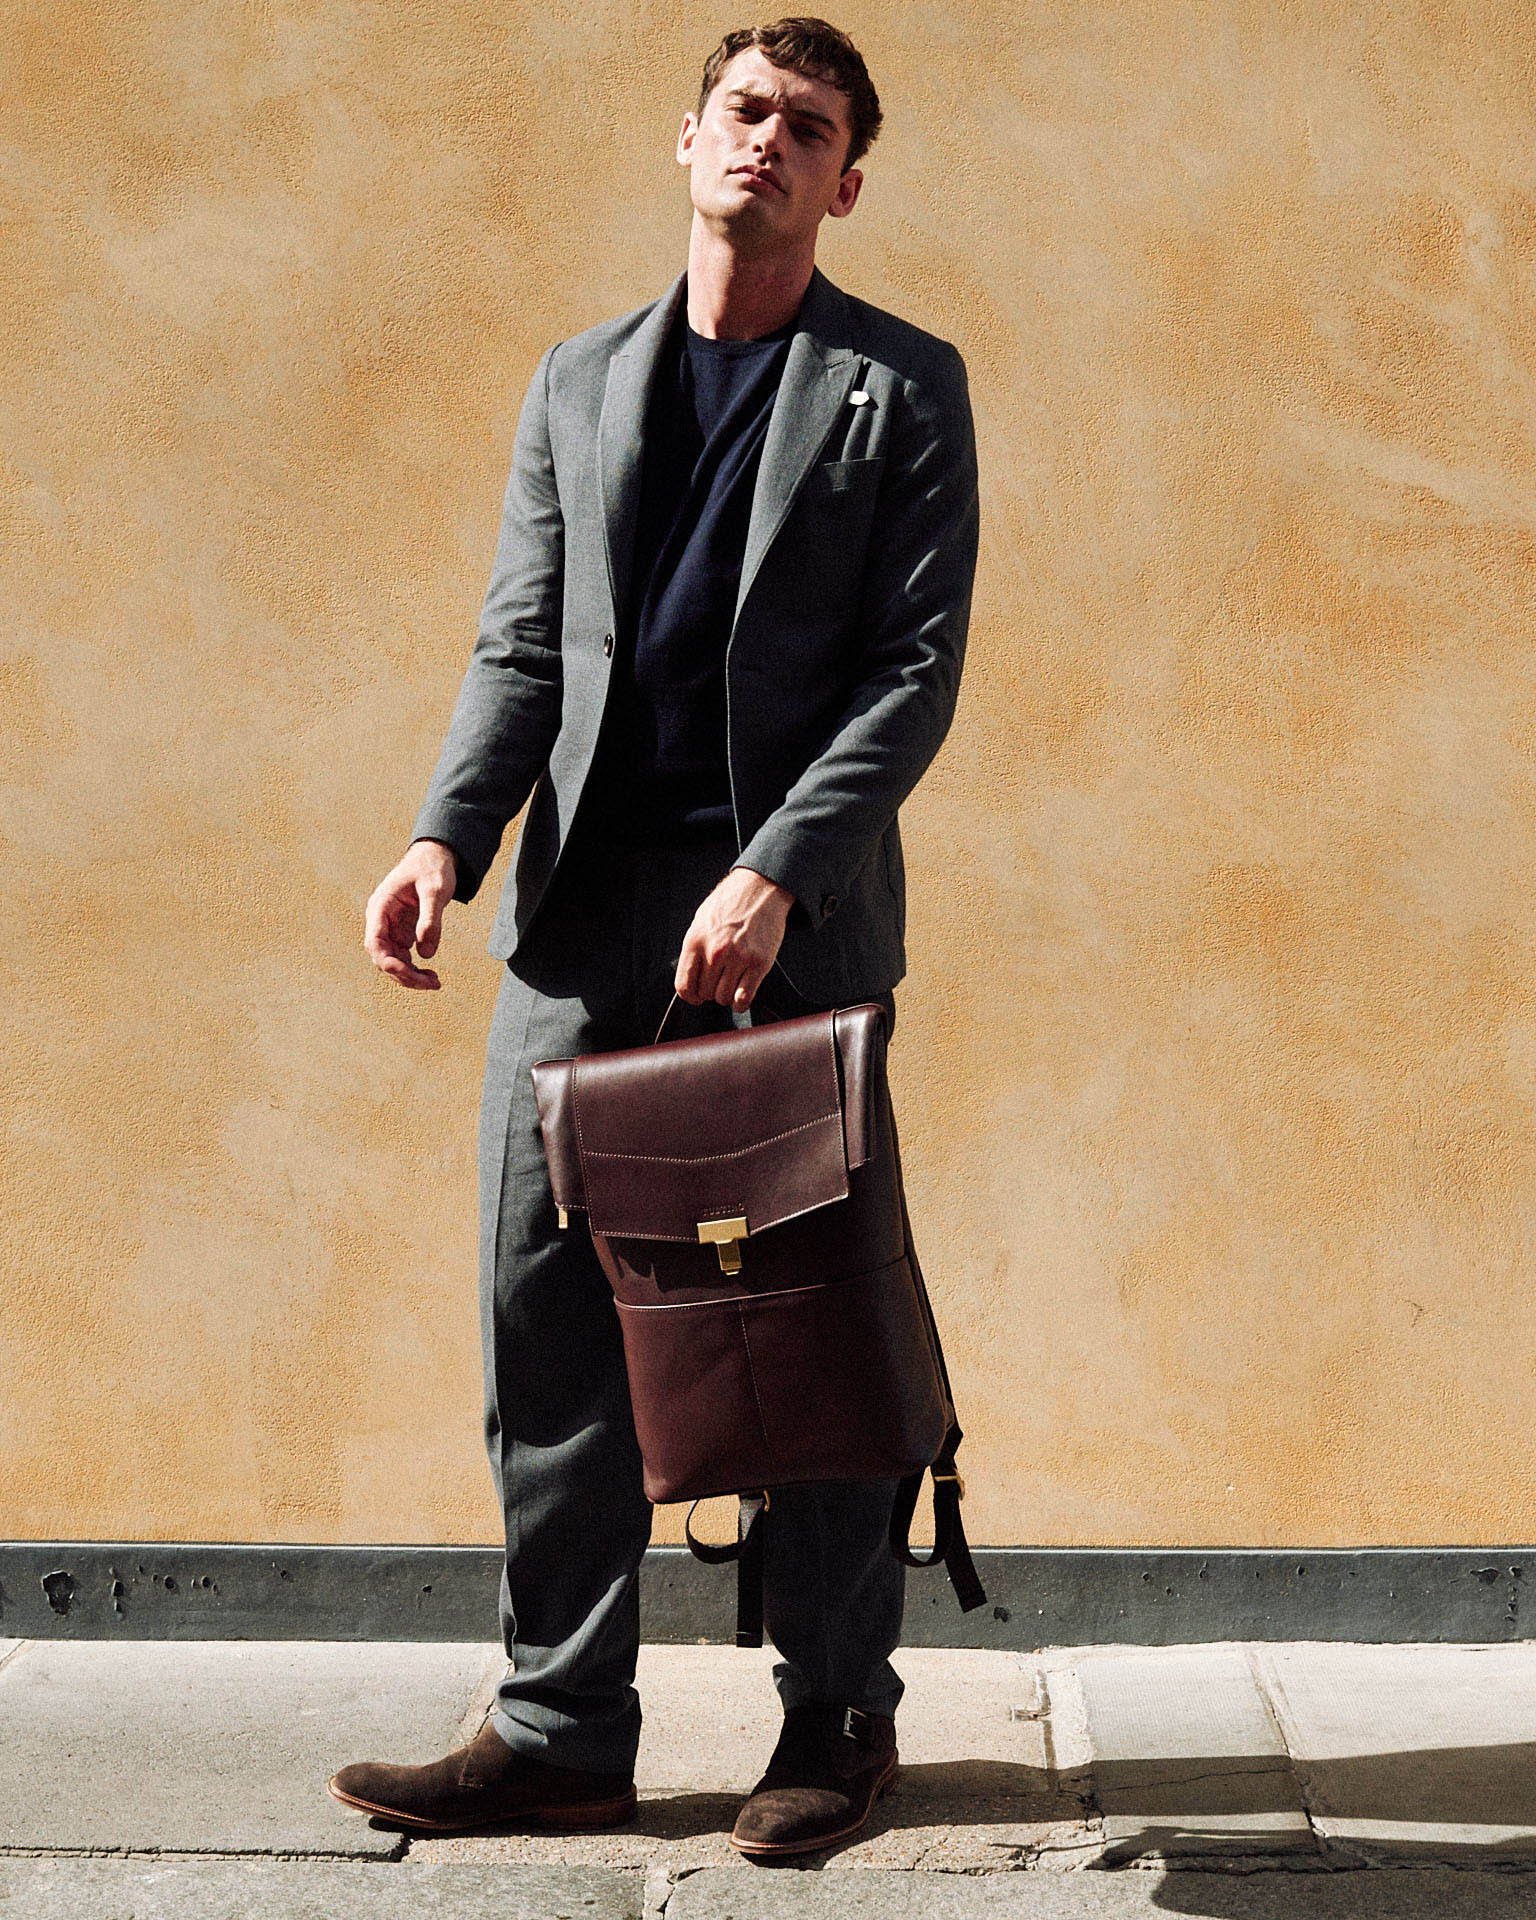 man, bag, orange wall by lifestyle photographer Tim Cole